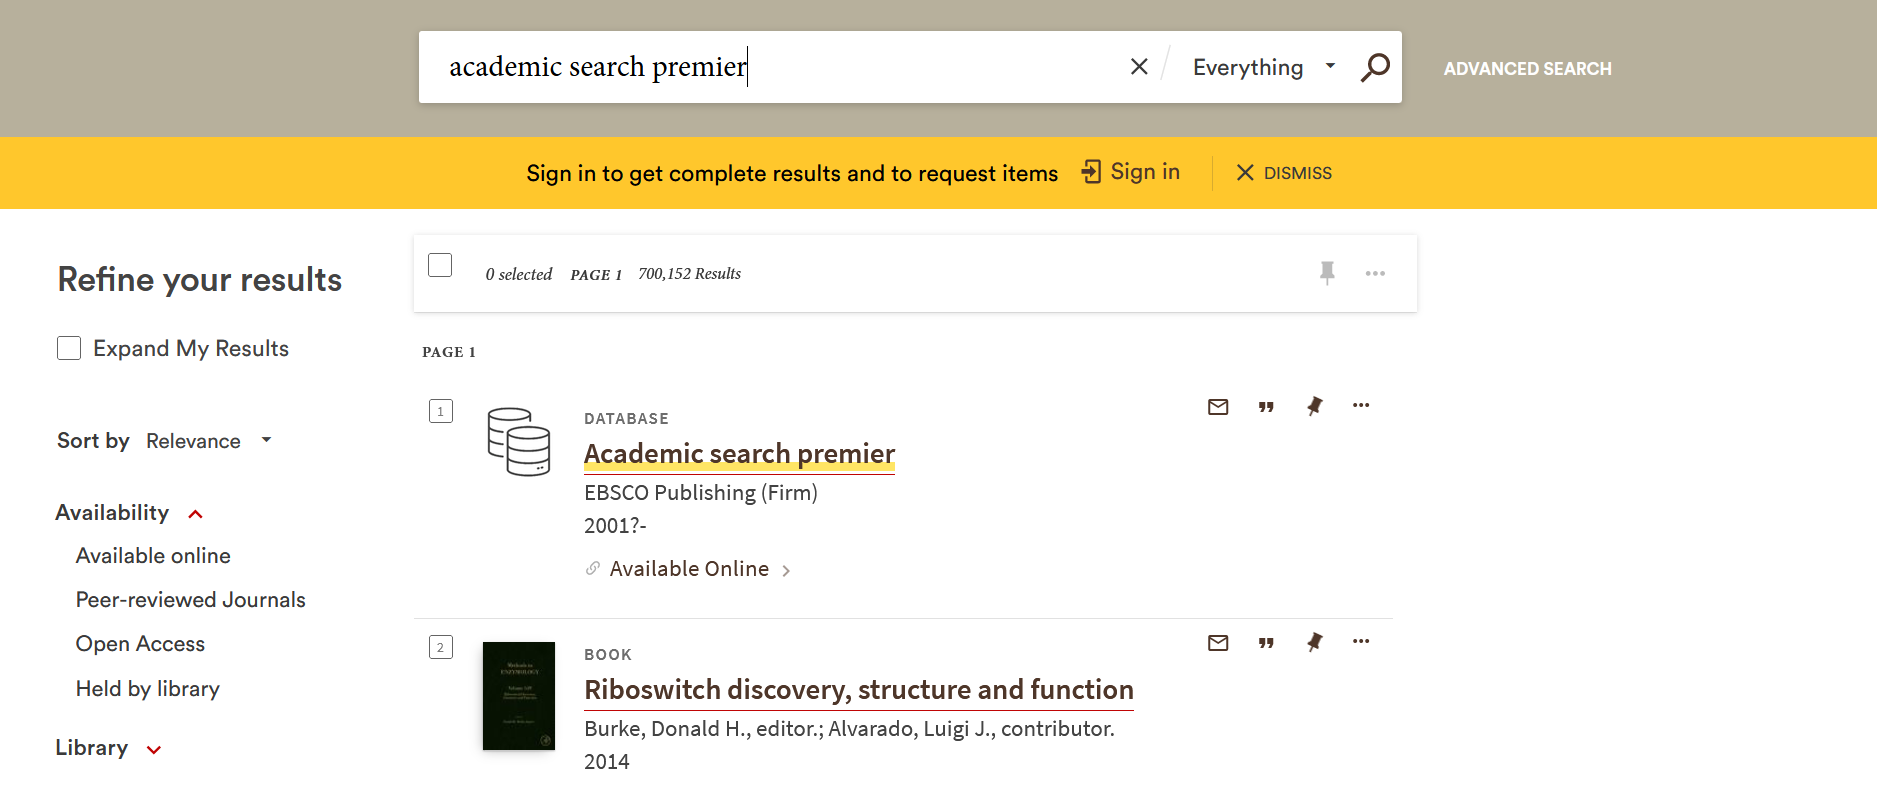 bruknow search results for academic search premier